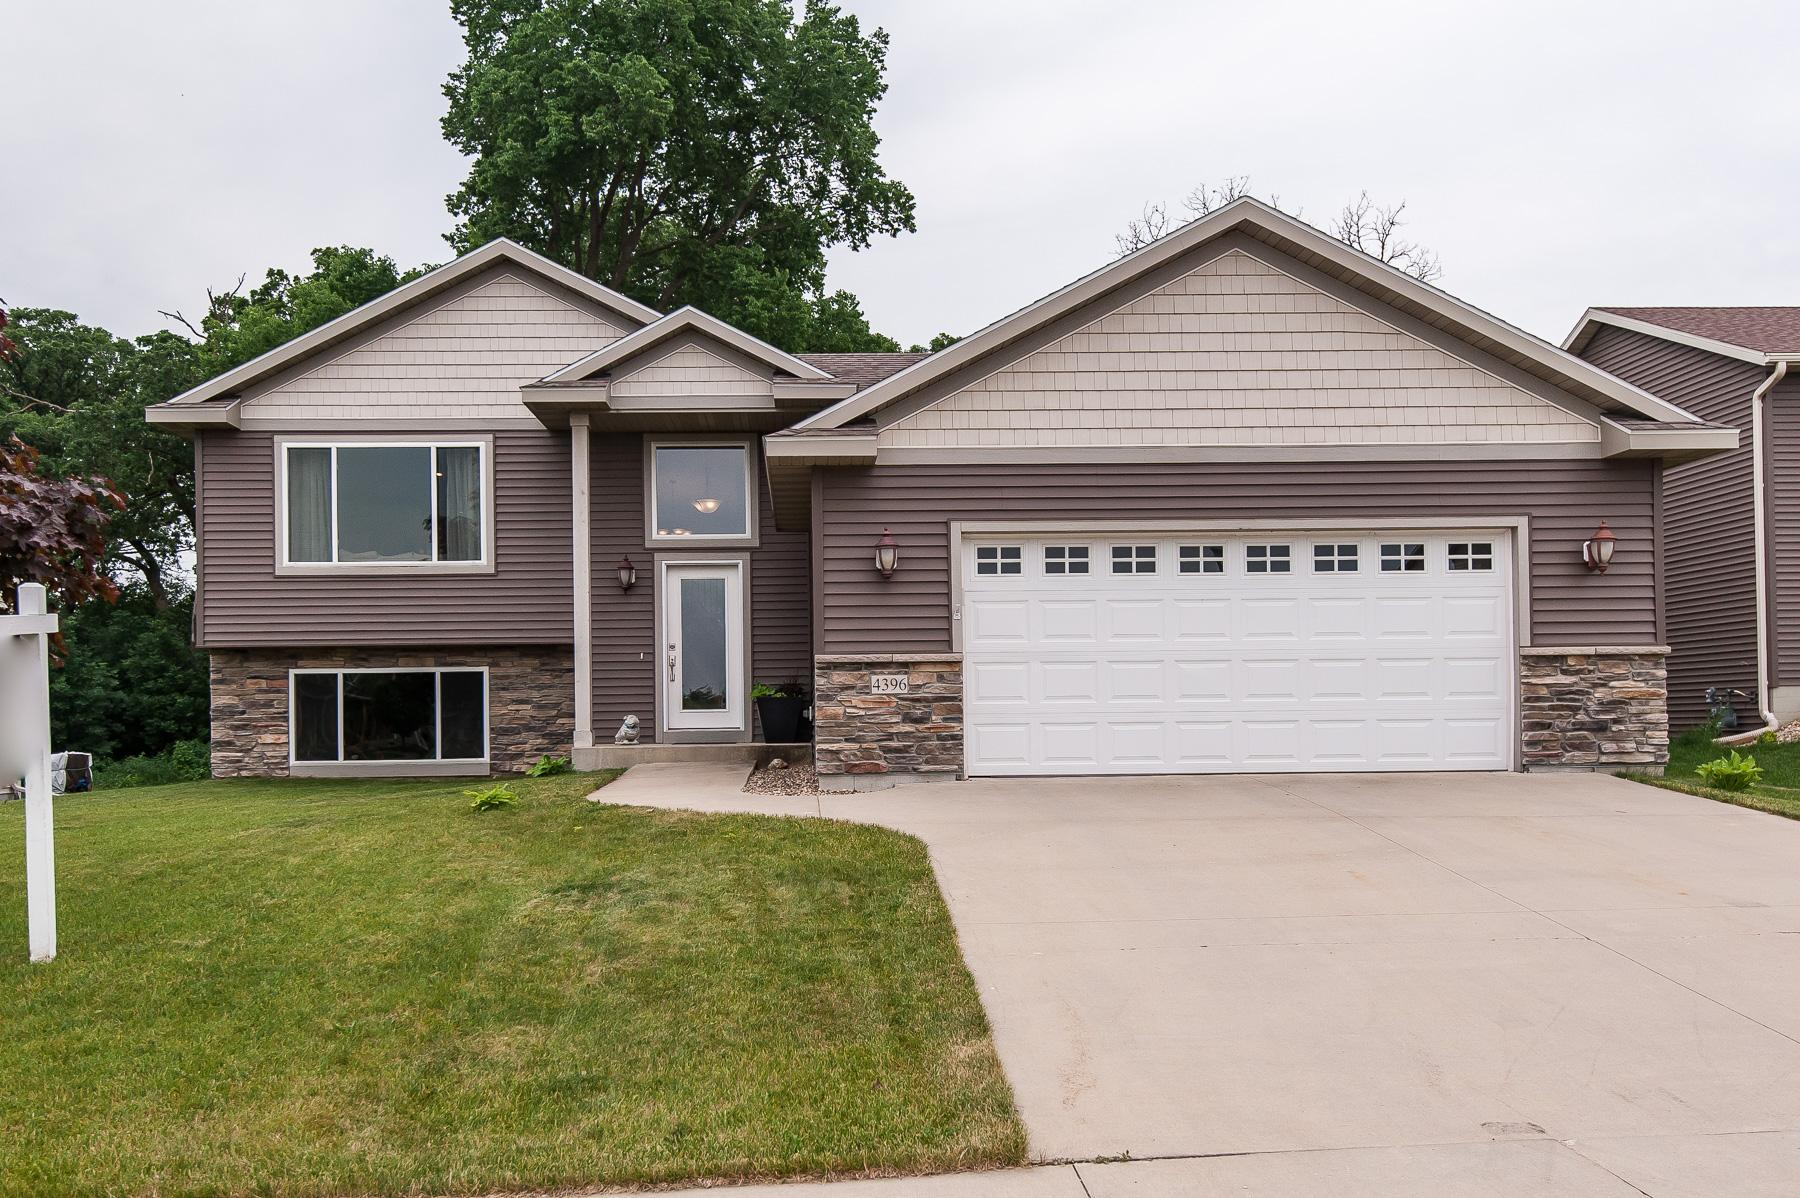 4396 35th NW Property Photo - Rochester, MN real estate listing